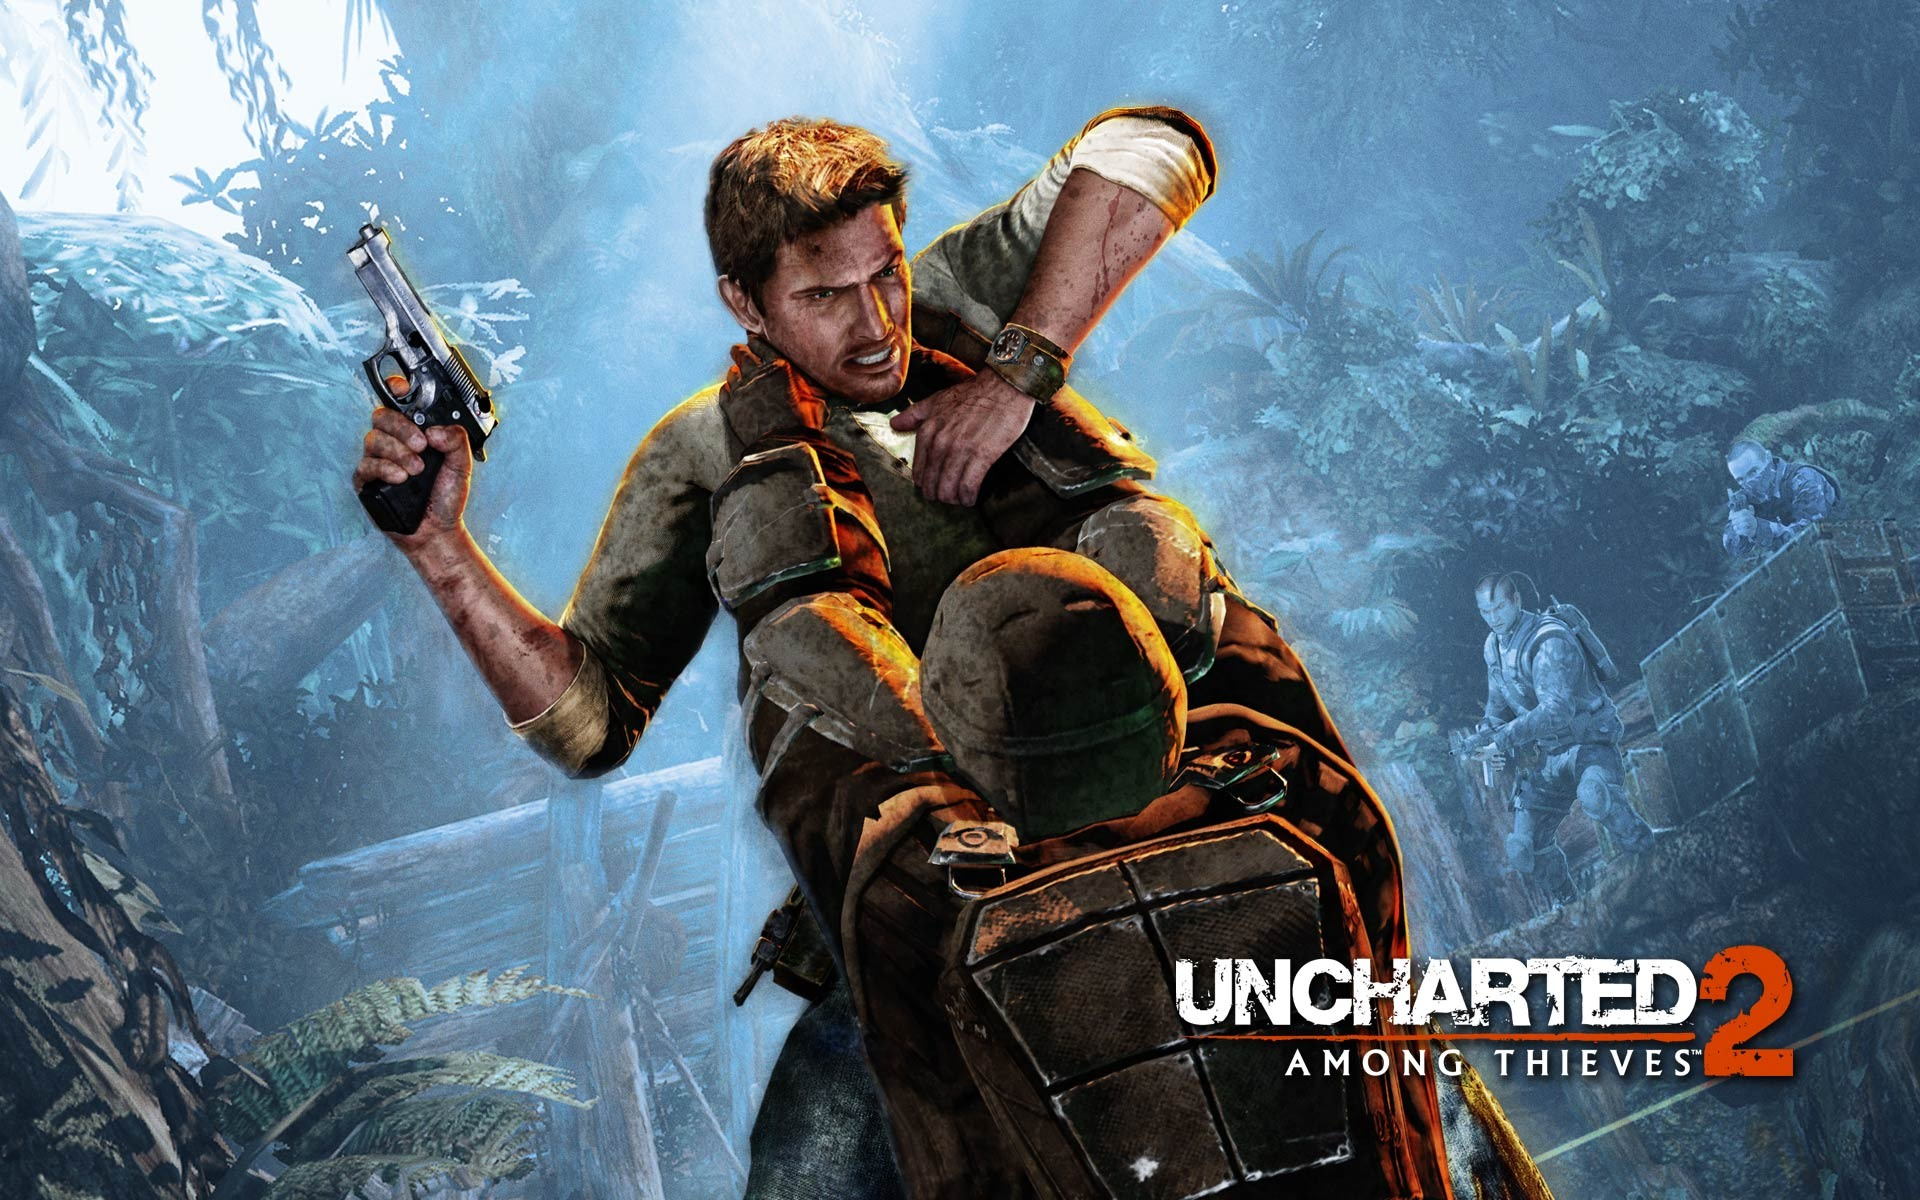 uncharted 2: among thieves wallpaper uncharted 2: among thieves wallpaper ...